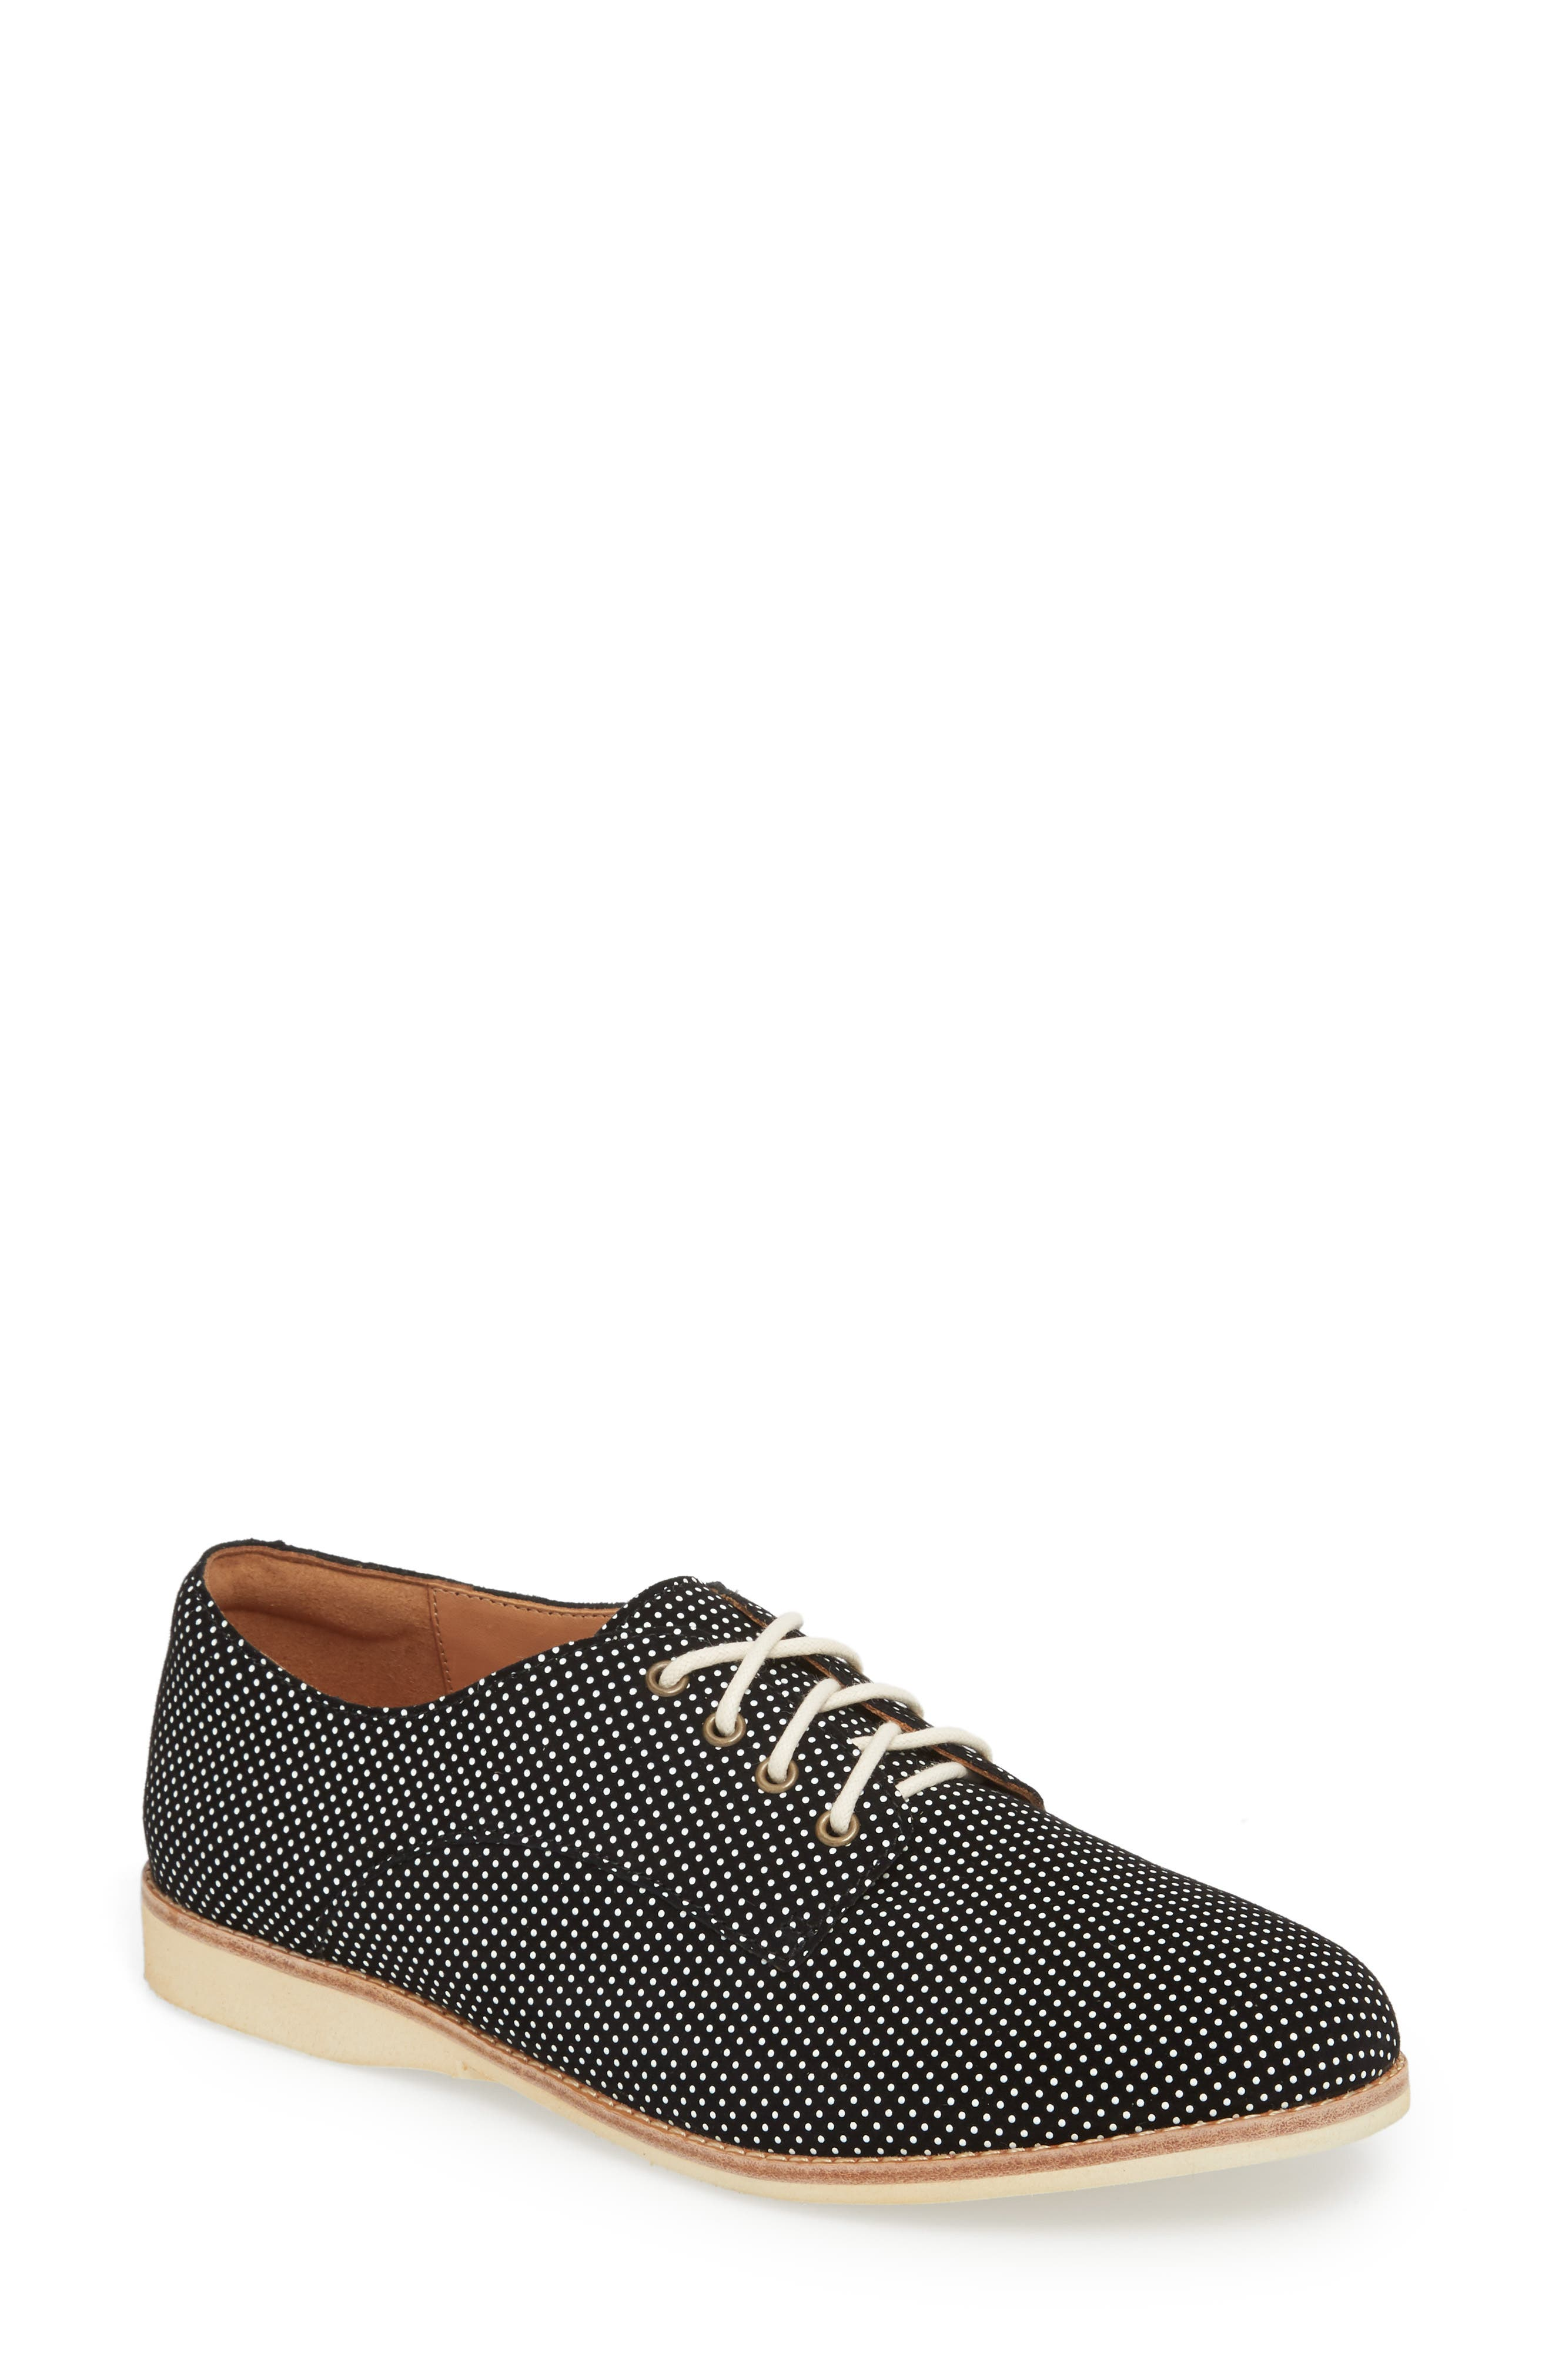 ROLLIE Derby Oxford in Black Dream Leather